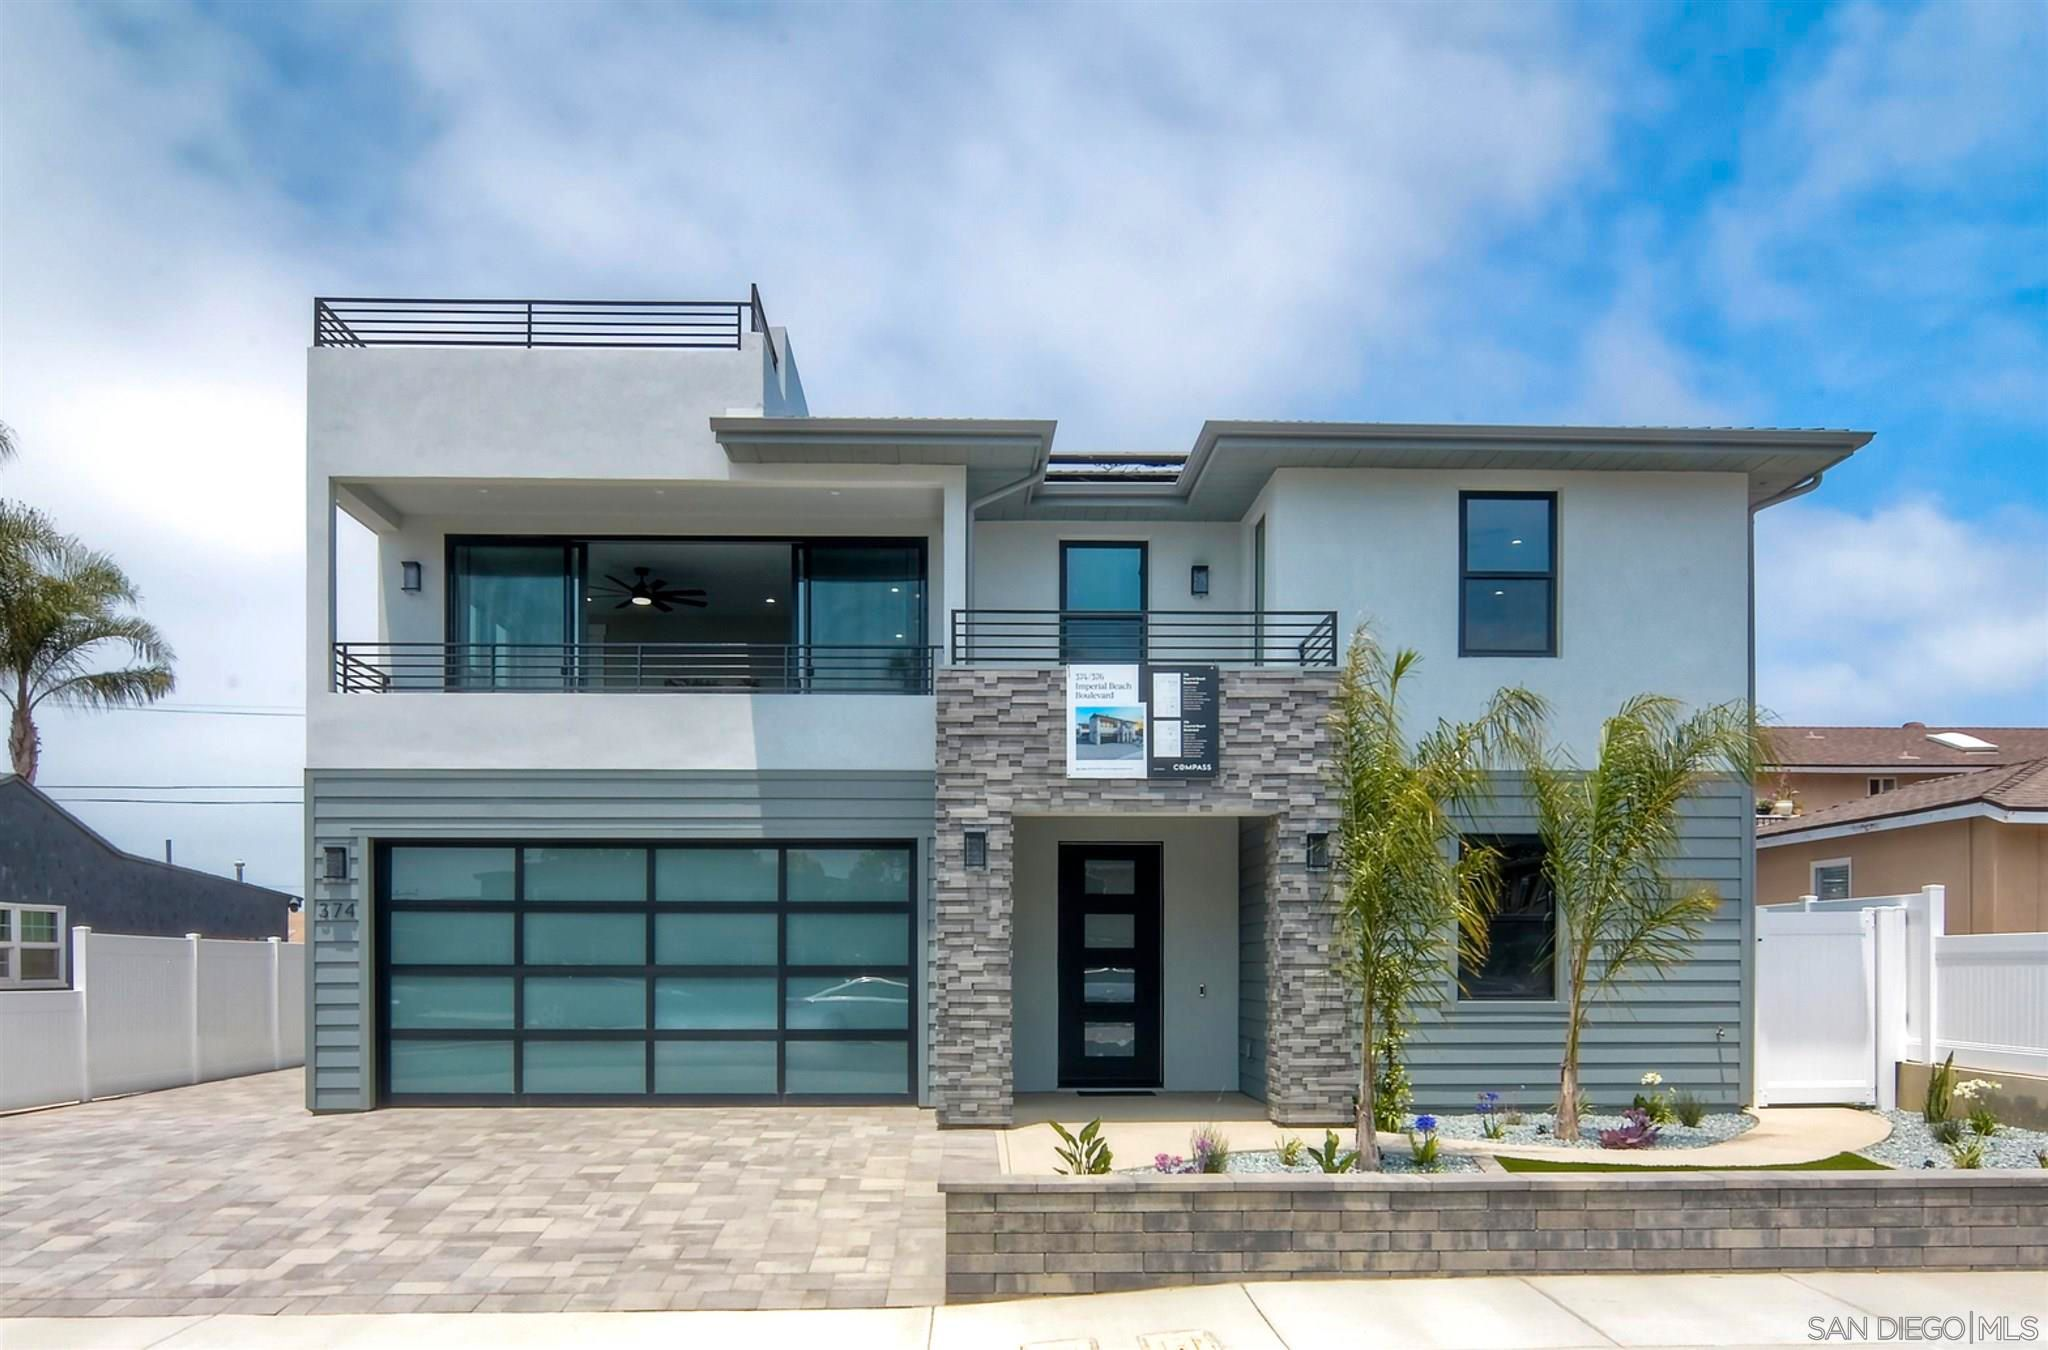 Main Photo: IMPERIAL BEACH House for sale : 4 bedrooms : 374 Imperial Beach Blvd